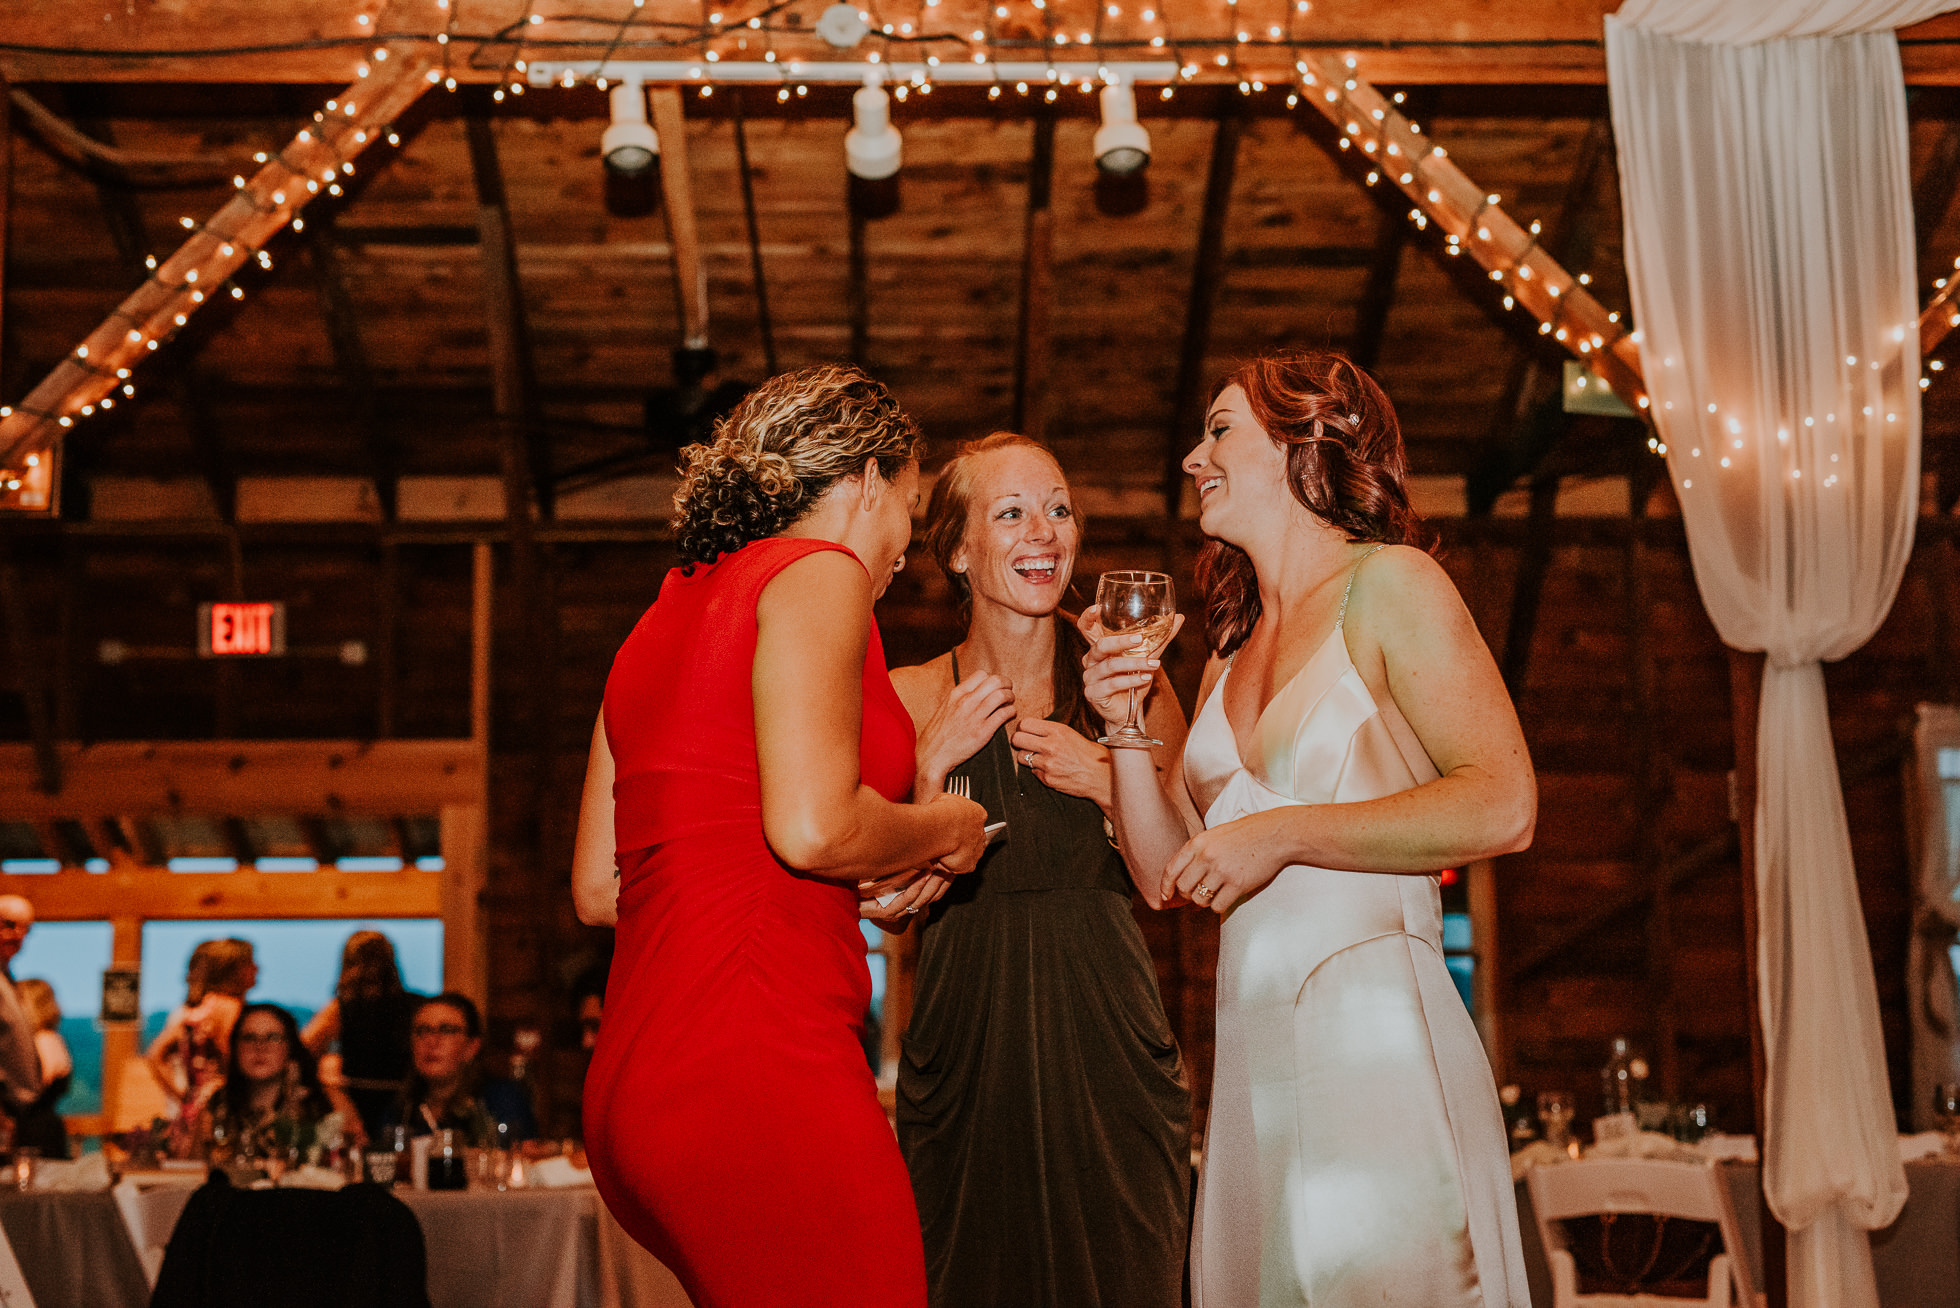 bride and friends laughing at reception at olde tater barn wedding in central bridge, ny photographed by traverse the tides